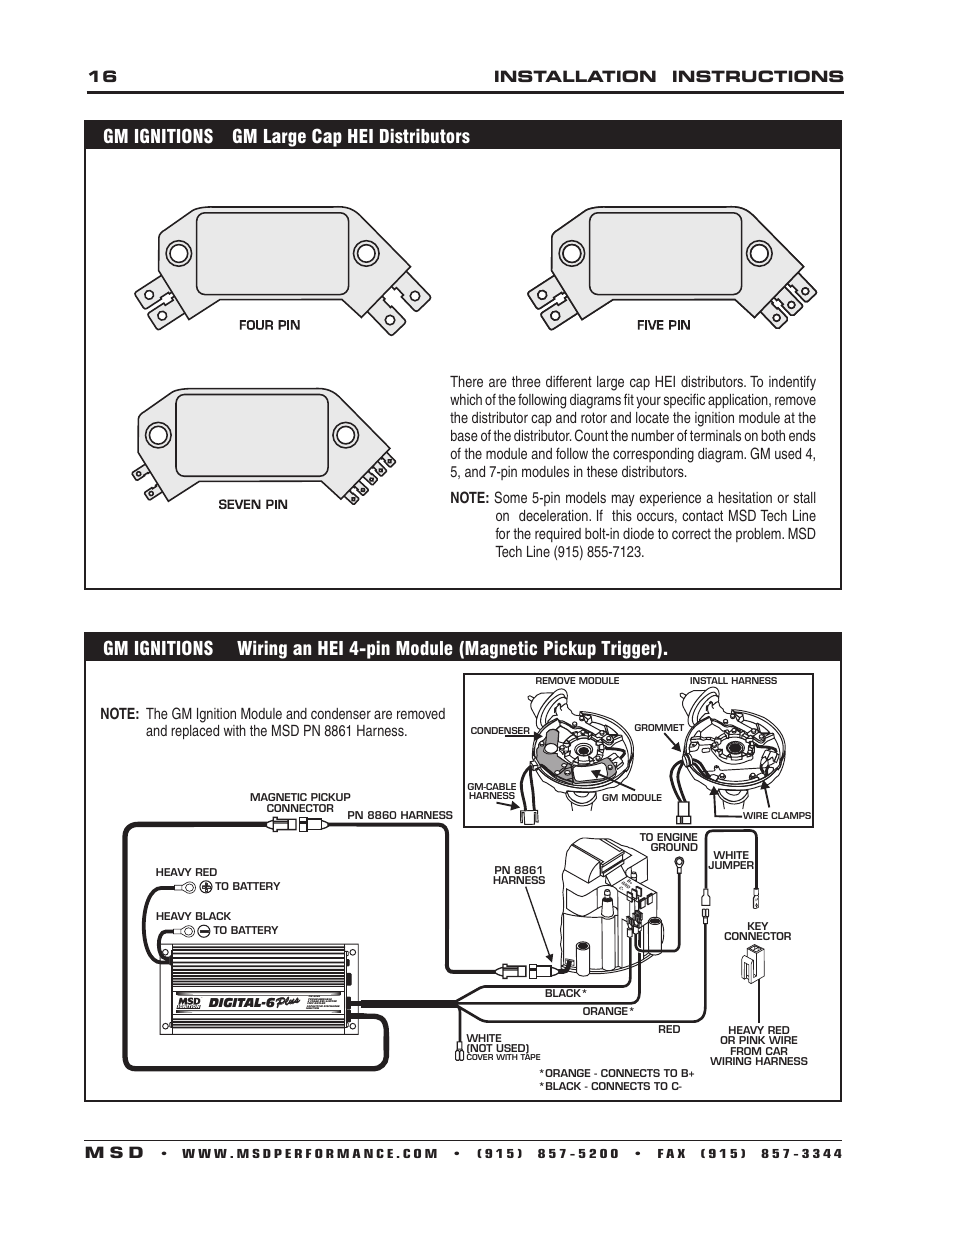 6401 Msd Ignition Wiring Diagram Ford 37 Images 6520 Digital 6 Plus Control Installation Page16 Diagrams 7531 The